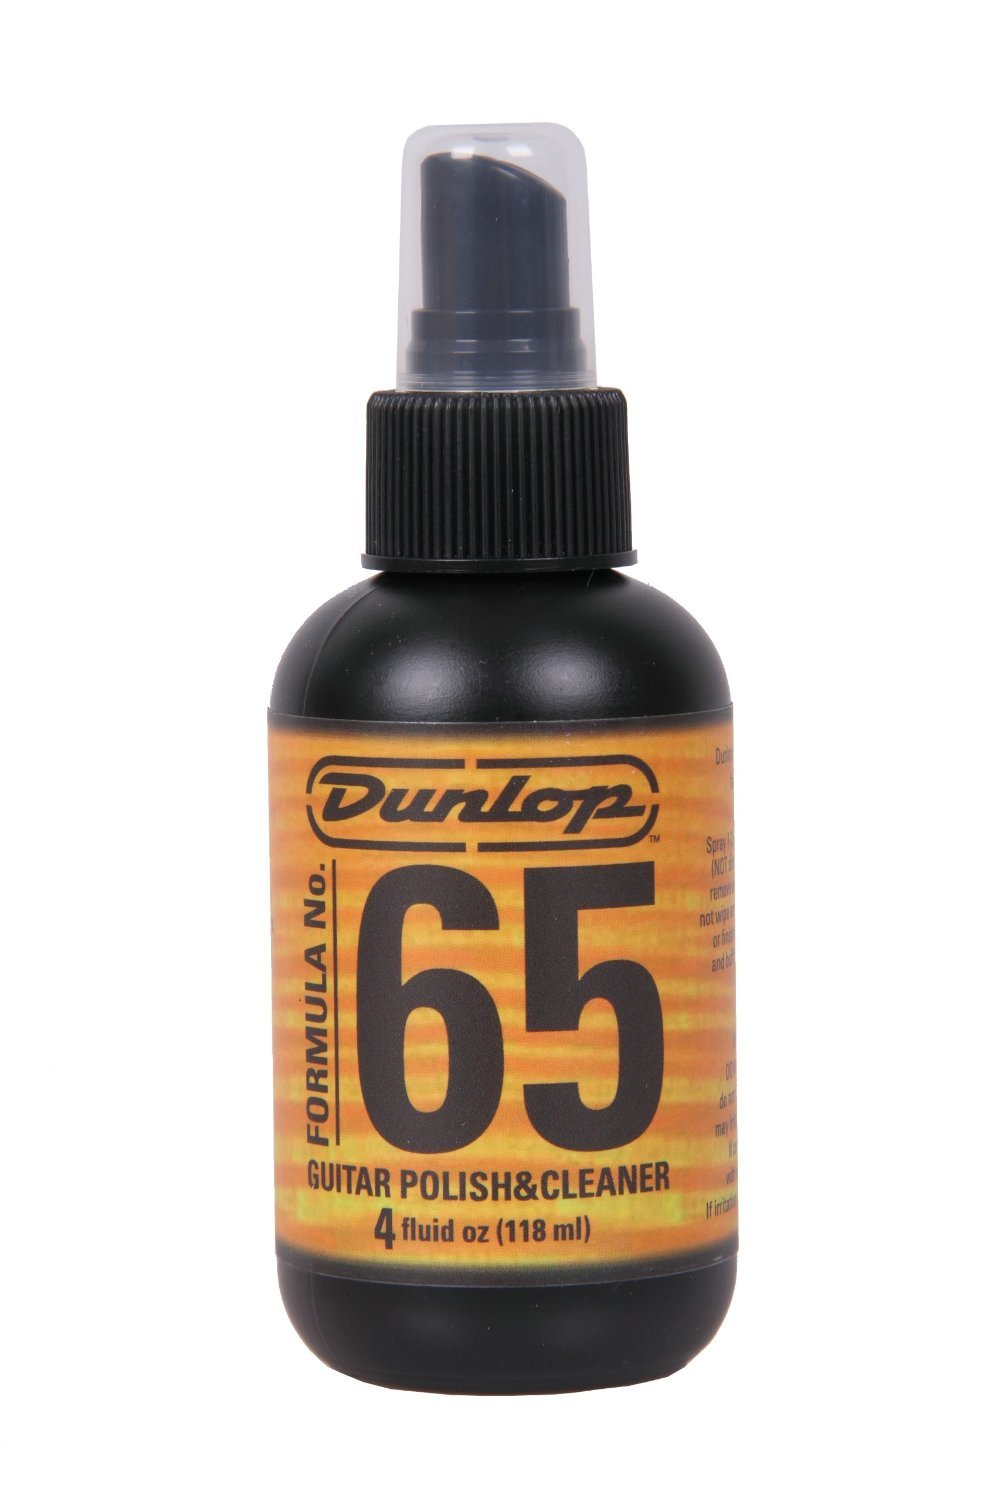 Dunlop Formula 65 Guitar Polish and Cleaner, 4 Fluid Ounces 654